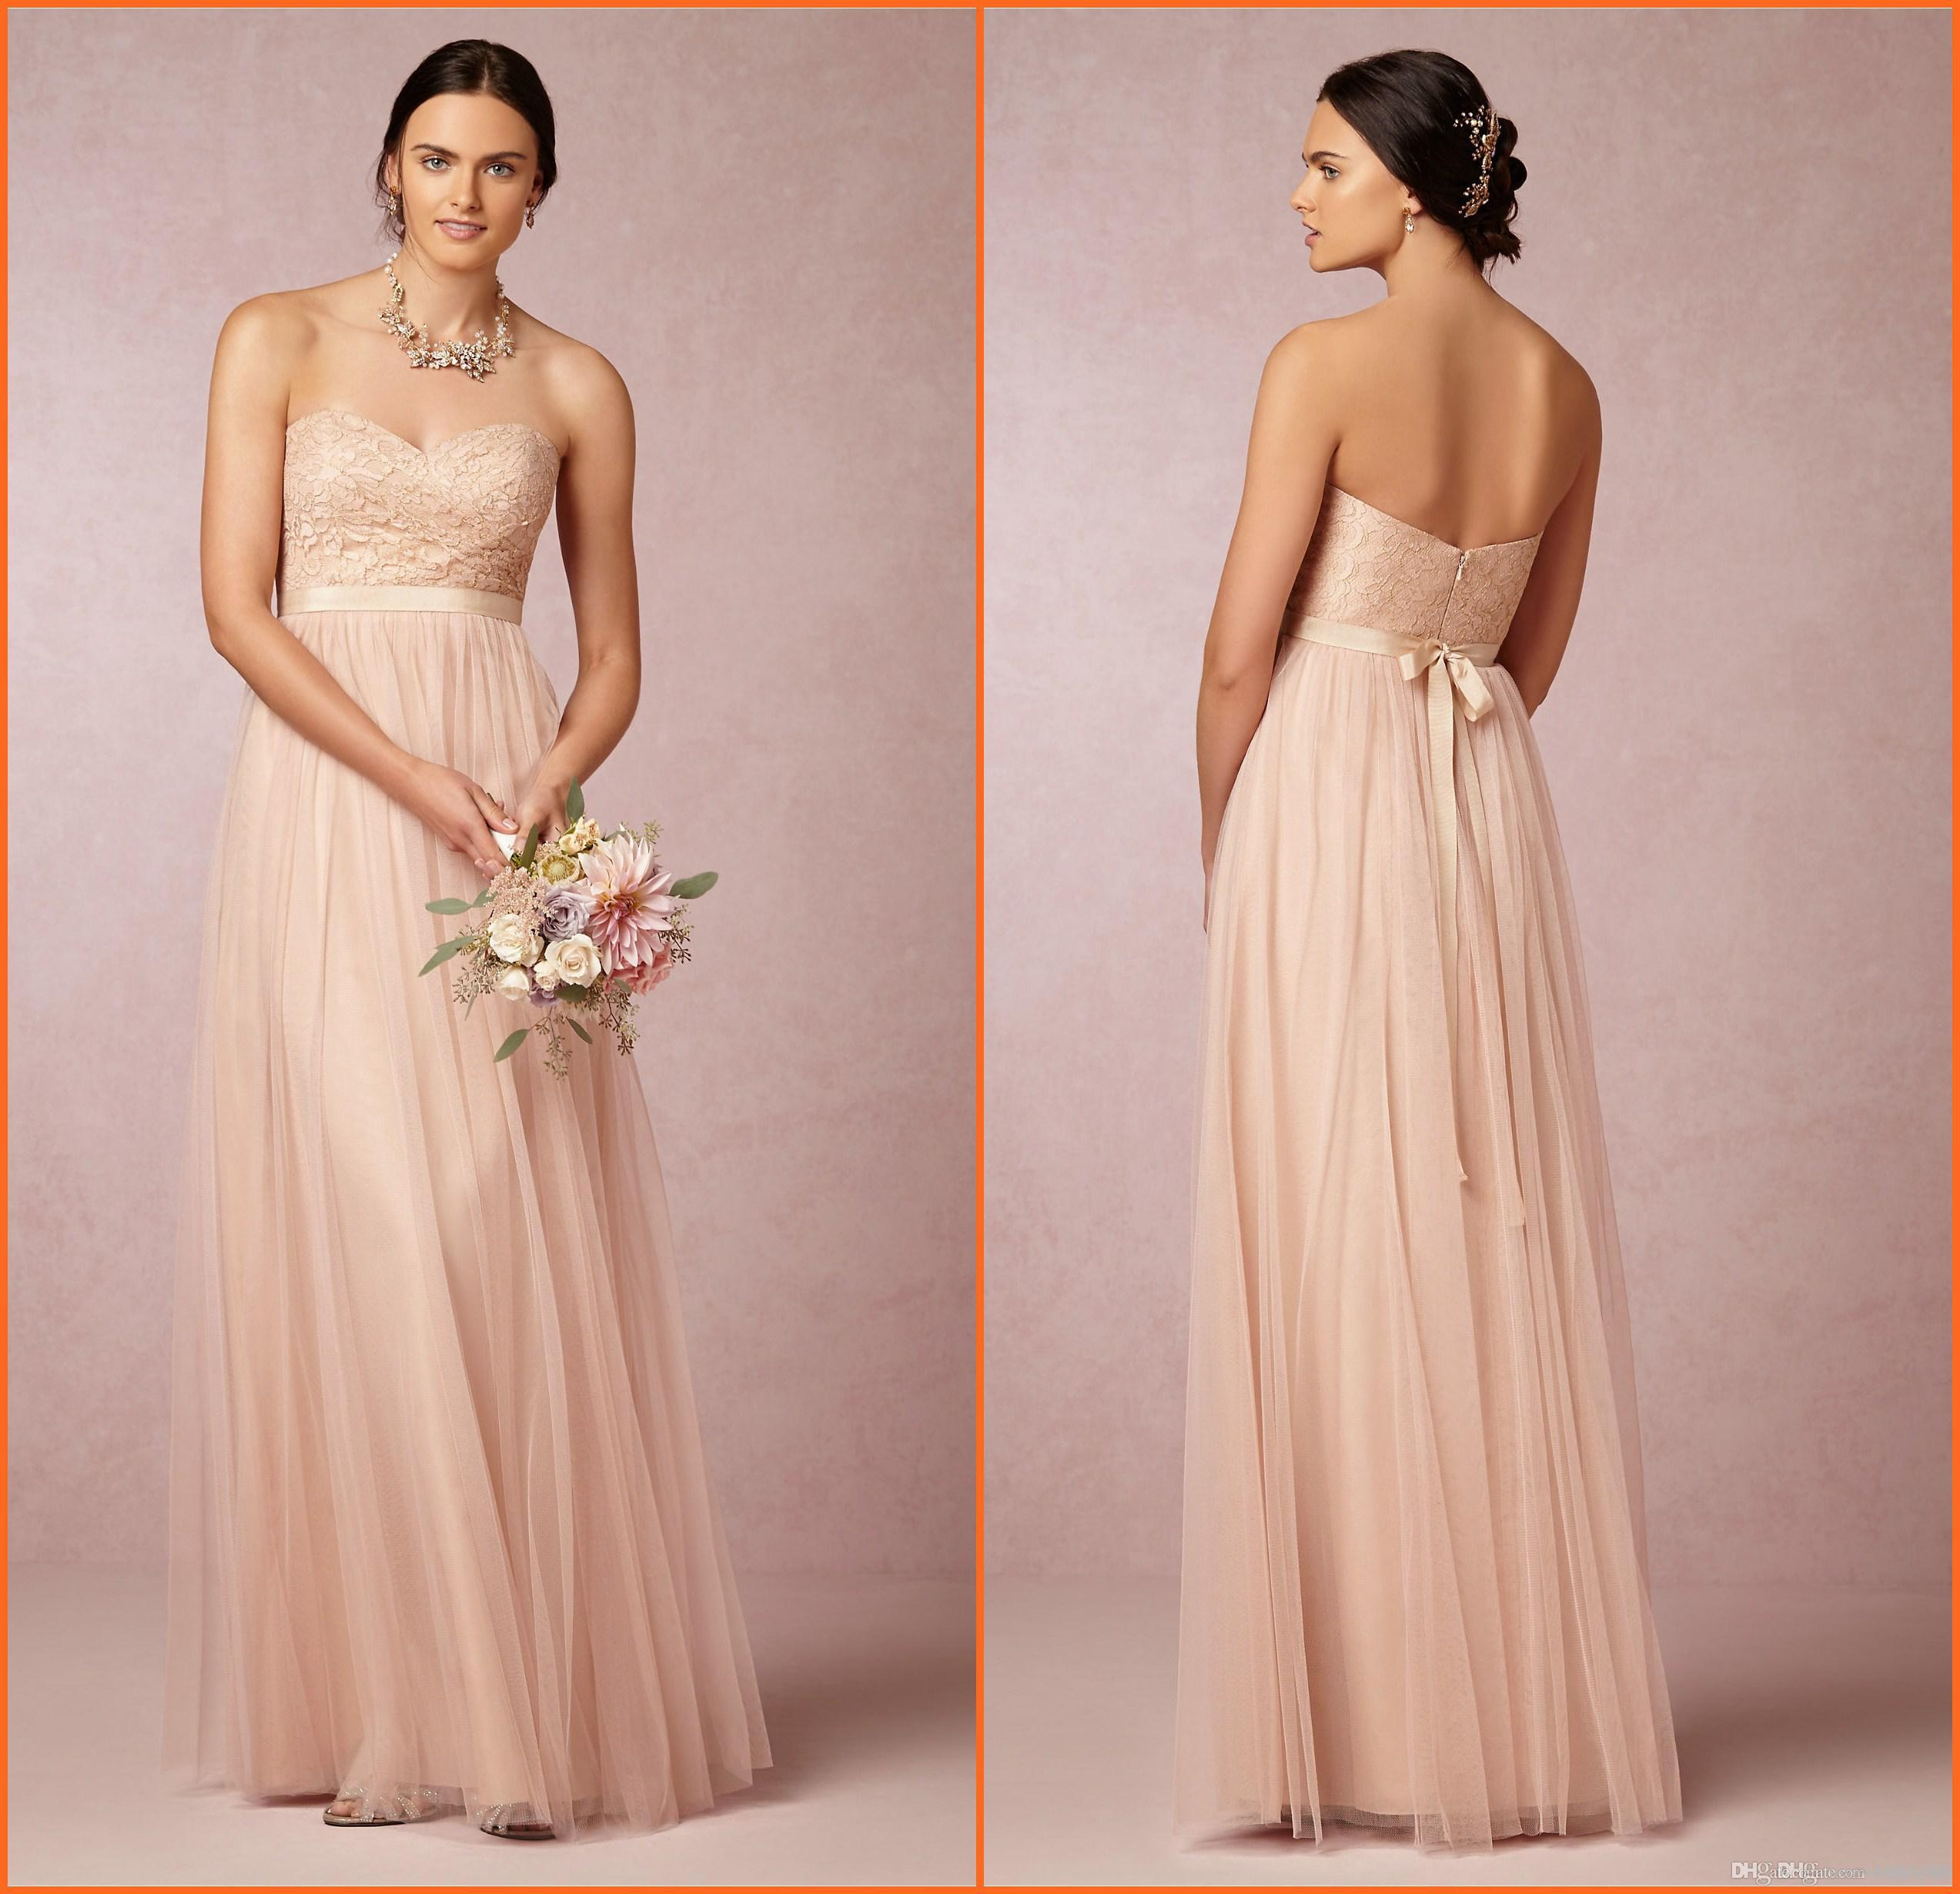 2015 blush pink long bridesmaid dresses sweetheart lace bodice a 2015 blush pink long bridesmaid dresses sweetheart lace bodice a line floor length tulle formal gowns evening dresses long bridesmaid dresses knee length ombrellifo Images